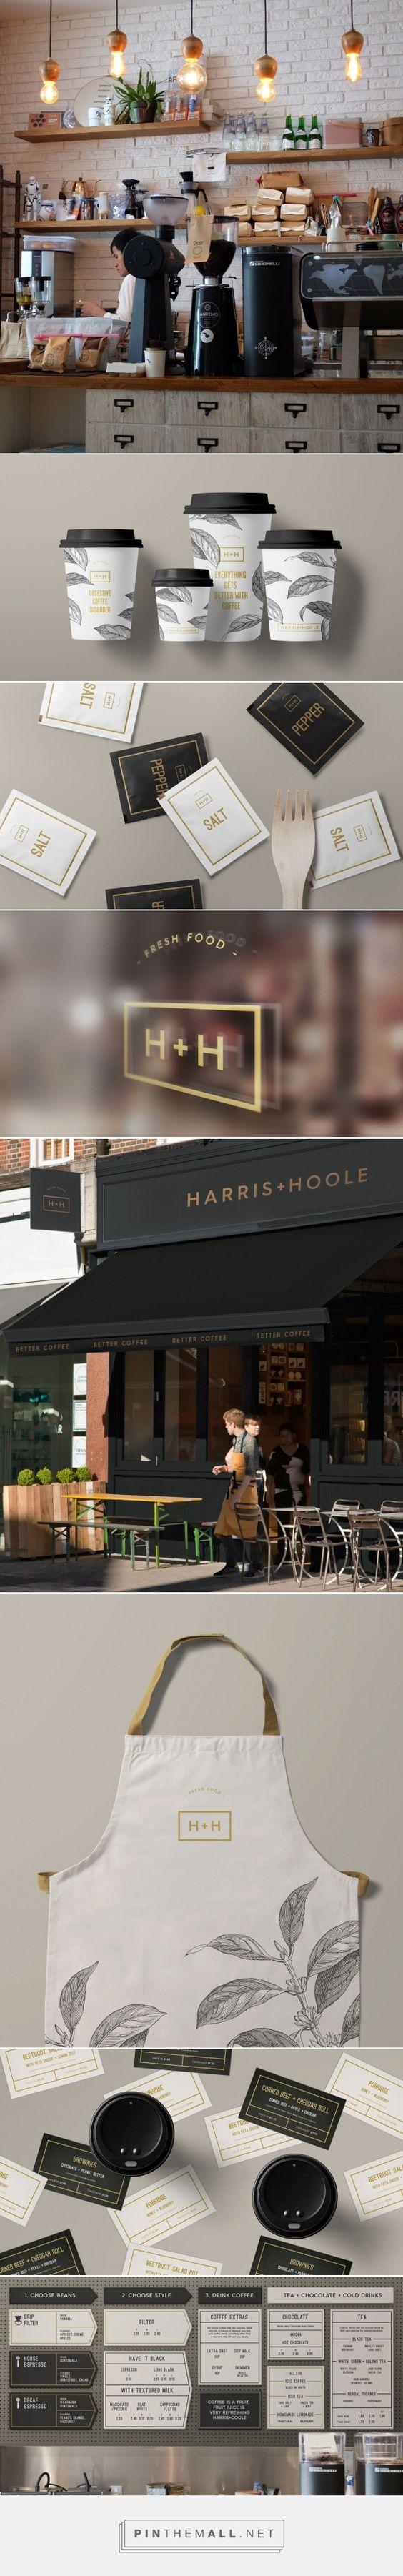 Harris + Hoole packaging and branding by Confederation Studio curated by Packaging Diva PD. Owned by Tesco, a chain of artisan coffee shops located around London and the South East.